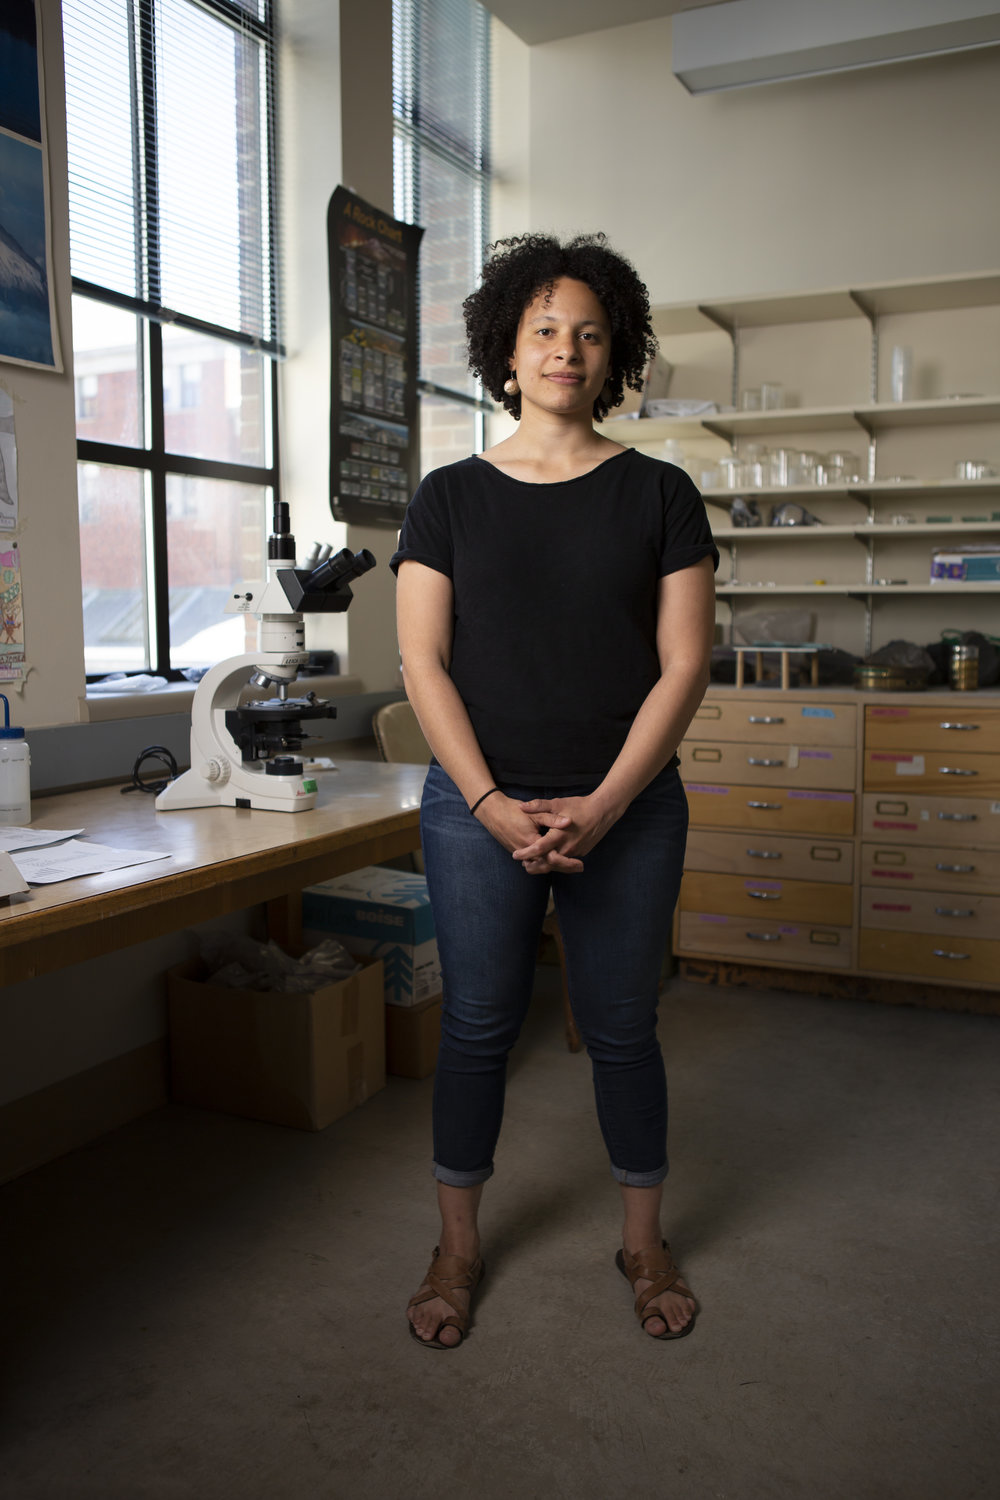 """Michelle Muth is a second-year geochemistry Ph.D. candidate and the outreach chair for Communities for Minorities in STEM. For most of her life, however, she wanted to be a writer.  """"Growing up I never saw myself as somebody who would go into the sciences,"""" said Muth, """"I think in part that stems from a lack of representation of women and minorities in science.""""  Now, Muth studies the chemistry of crystals formed in volcanic magma deposits to understand sulfur cycles."""